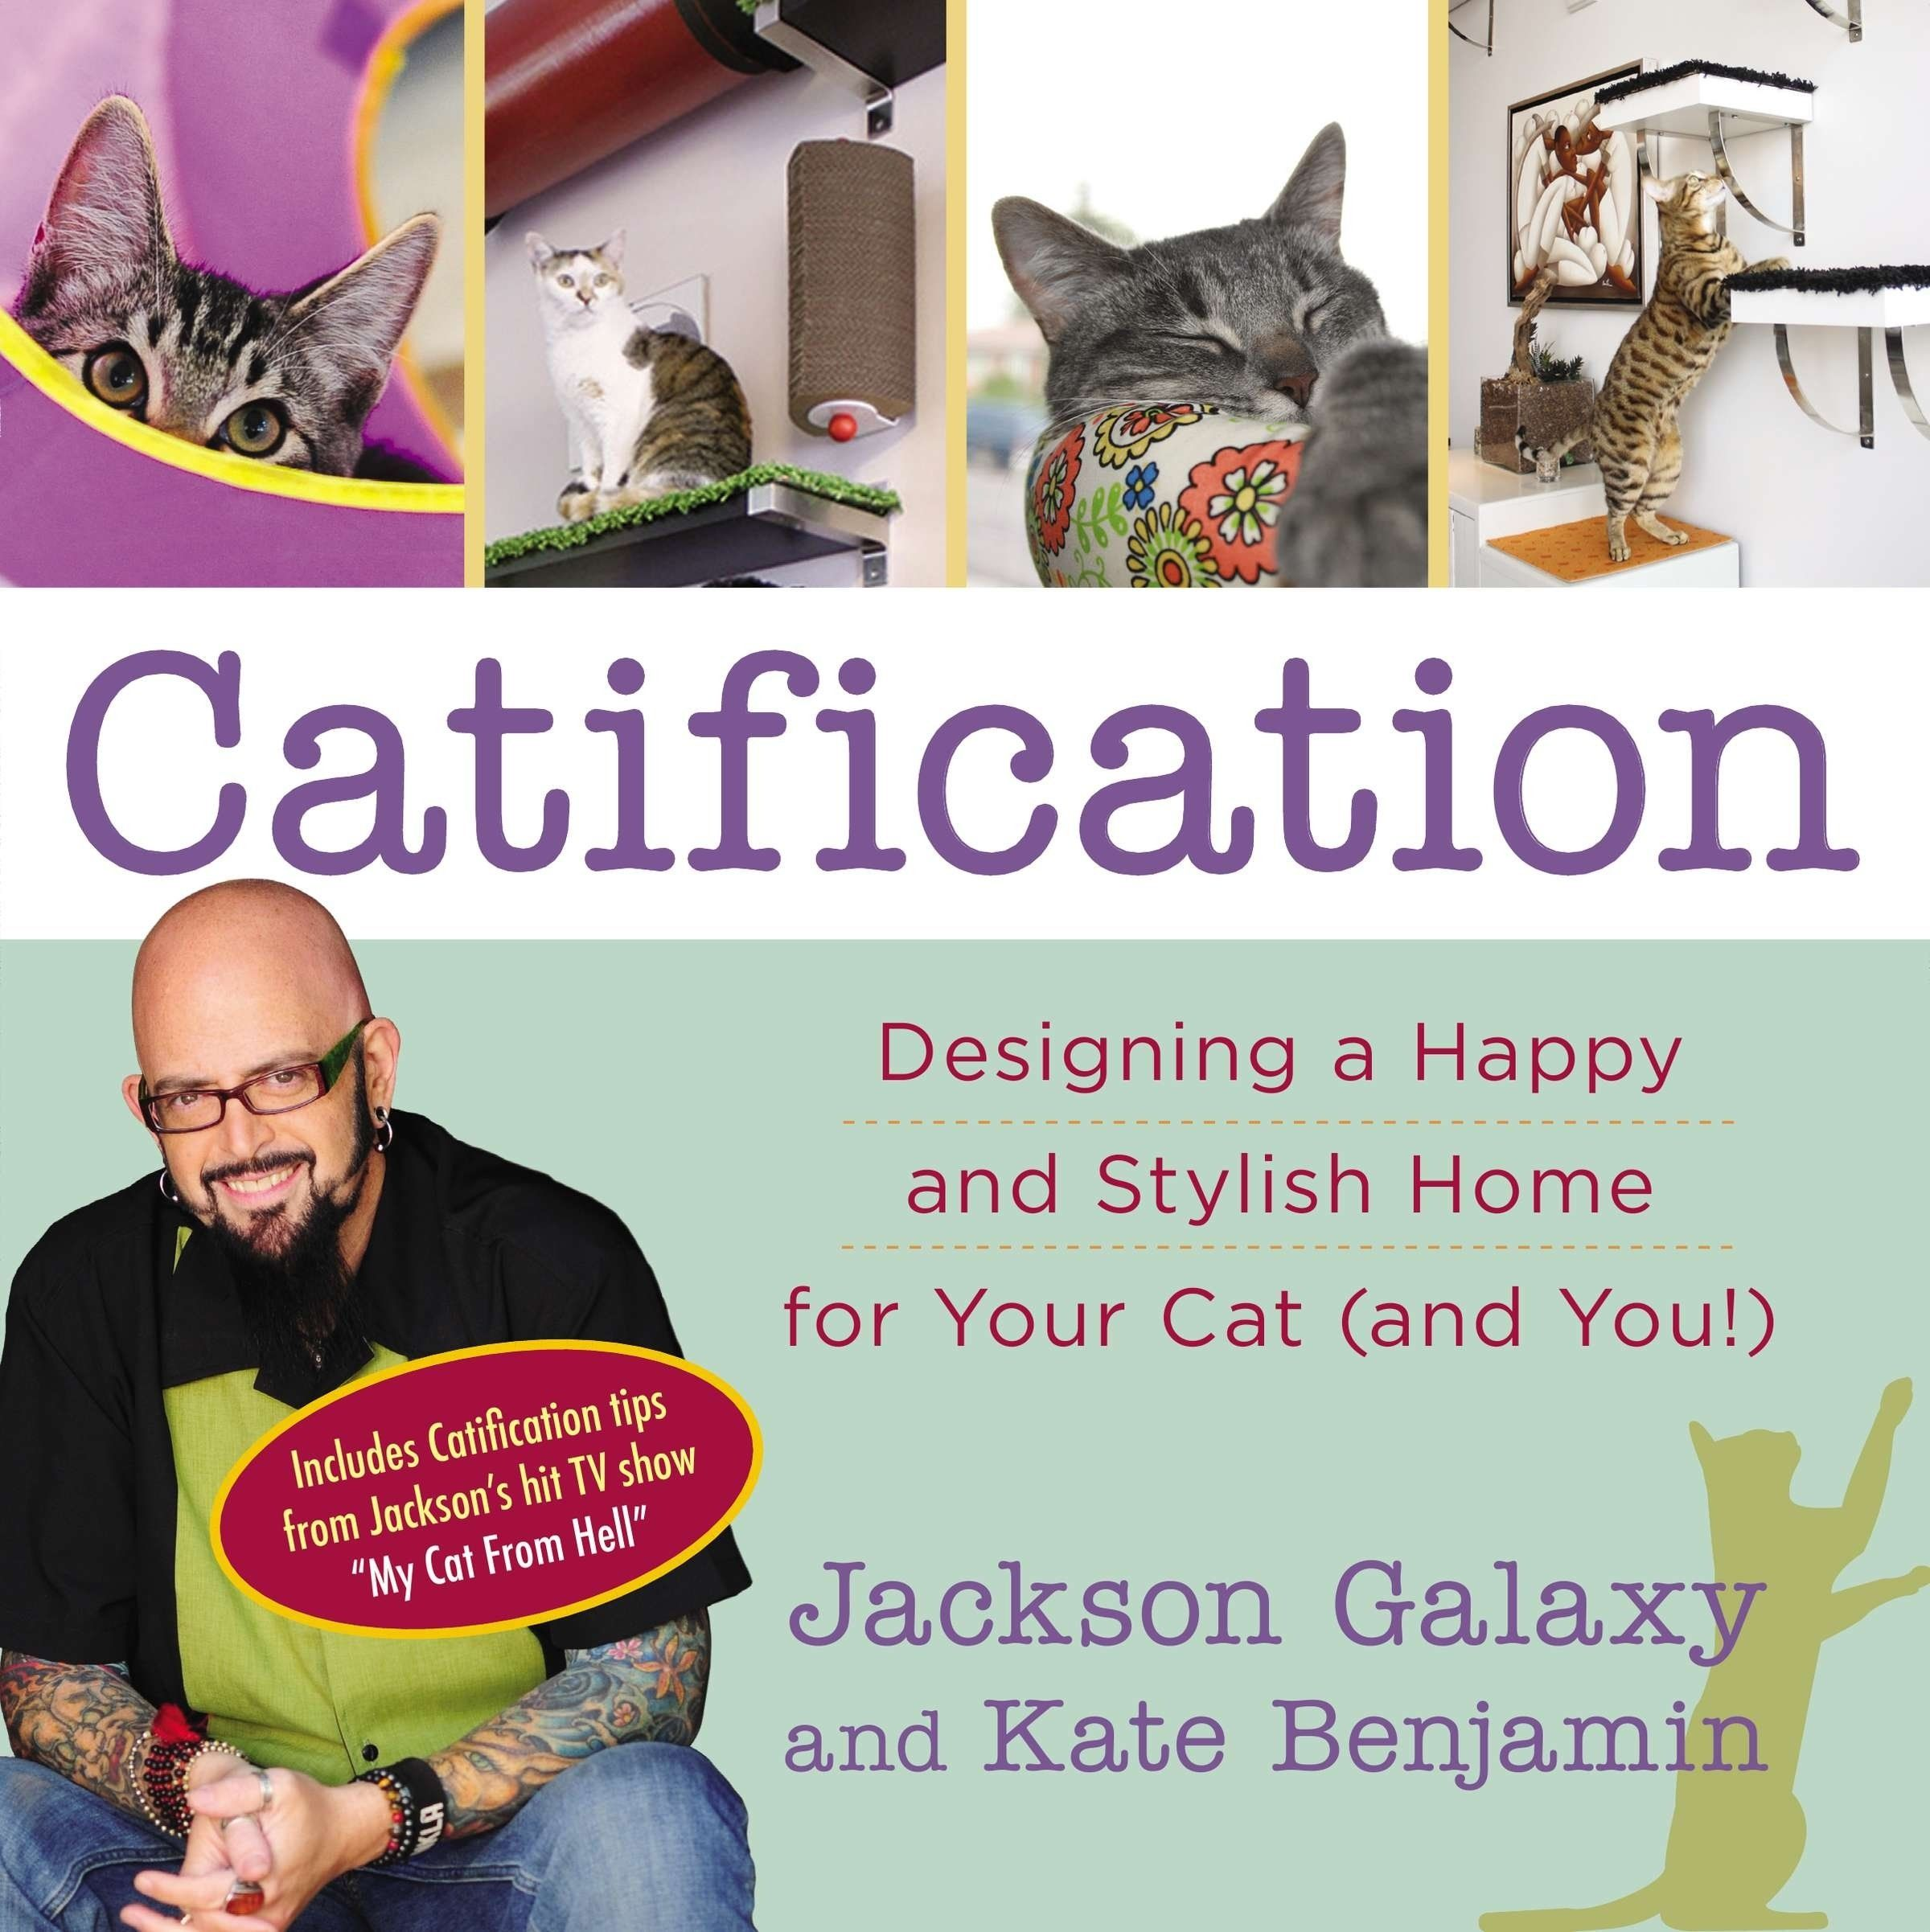 Catification Designing A Happy And Stylish Home For Your Cat And You Read More Reviews Of The Product By Visiting The Lin Jackson Galaxy Galaxy Cat Cat Nutrition